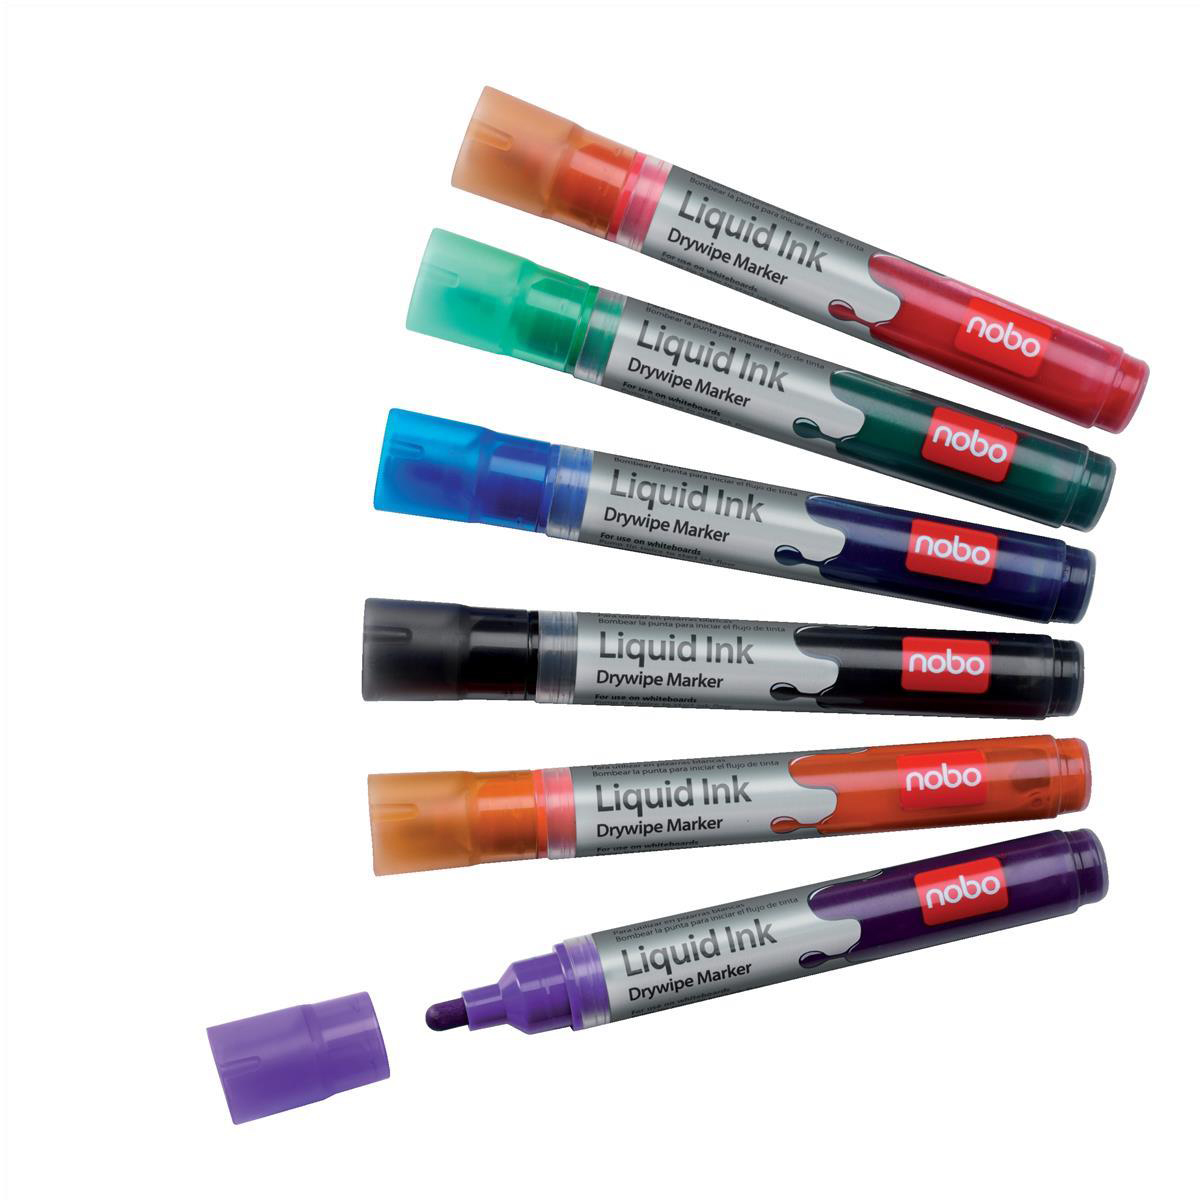 Nobo Marker Liquid Ink Dry-wipe W/bd/Flipchart/OHP Bullet Tip 3mm Line Assorted Ref 1901072 Pack 12